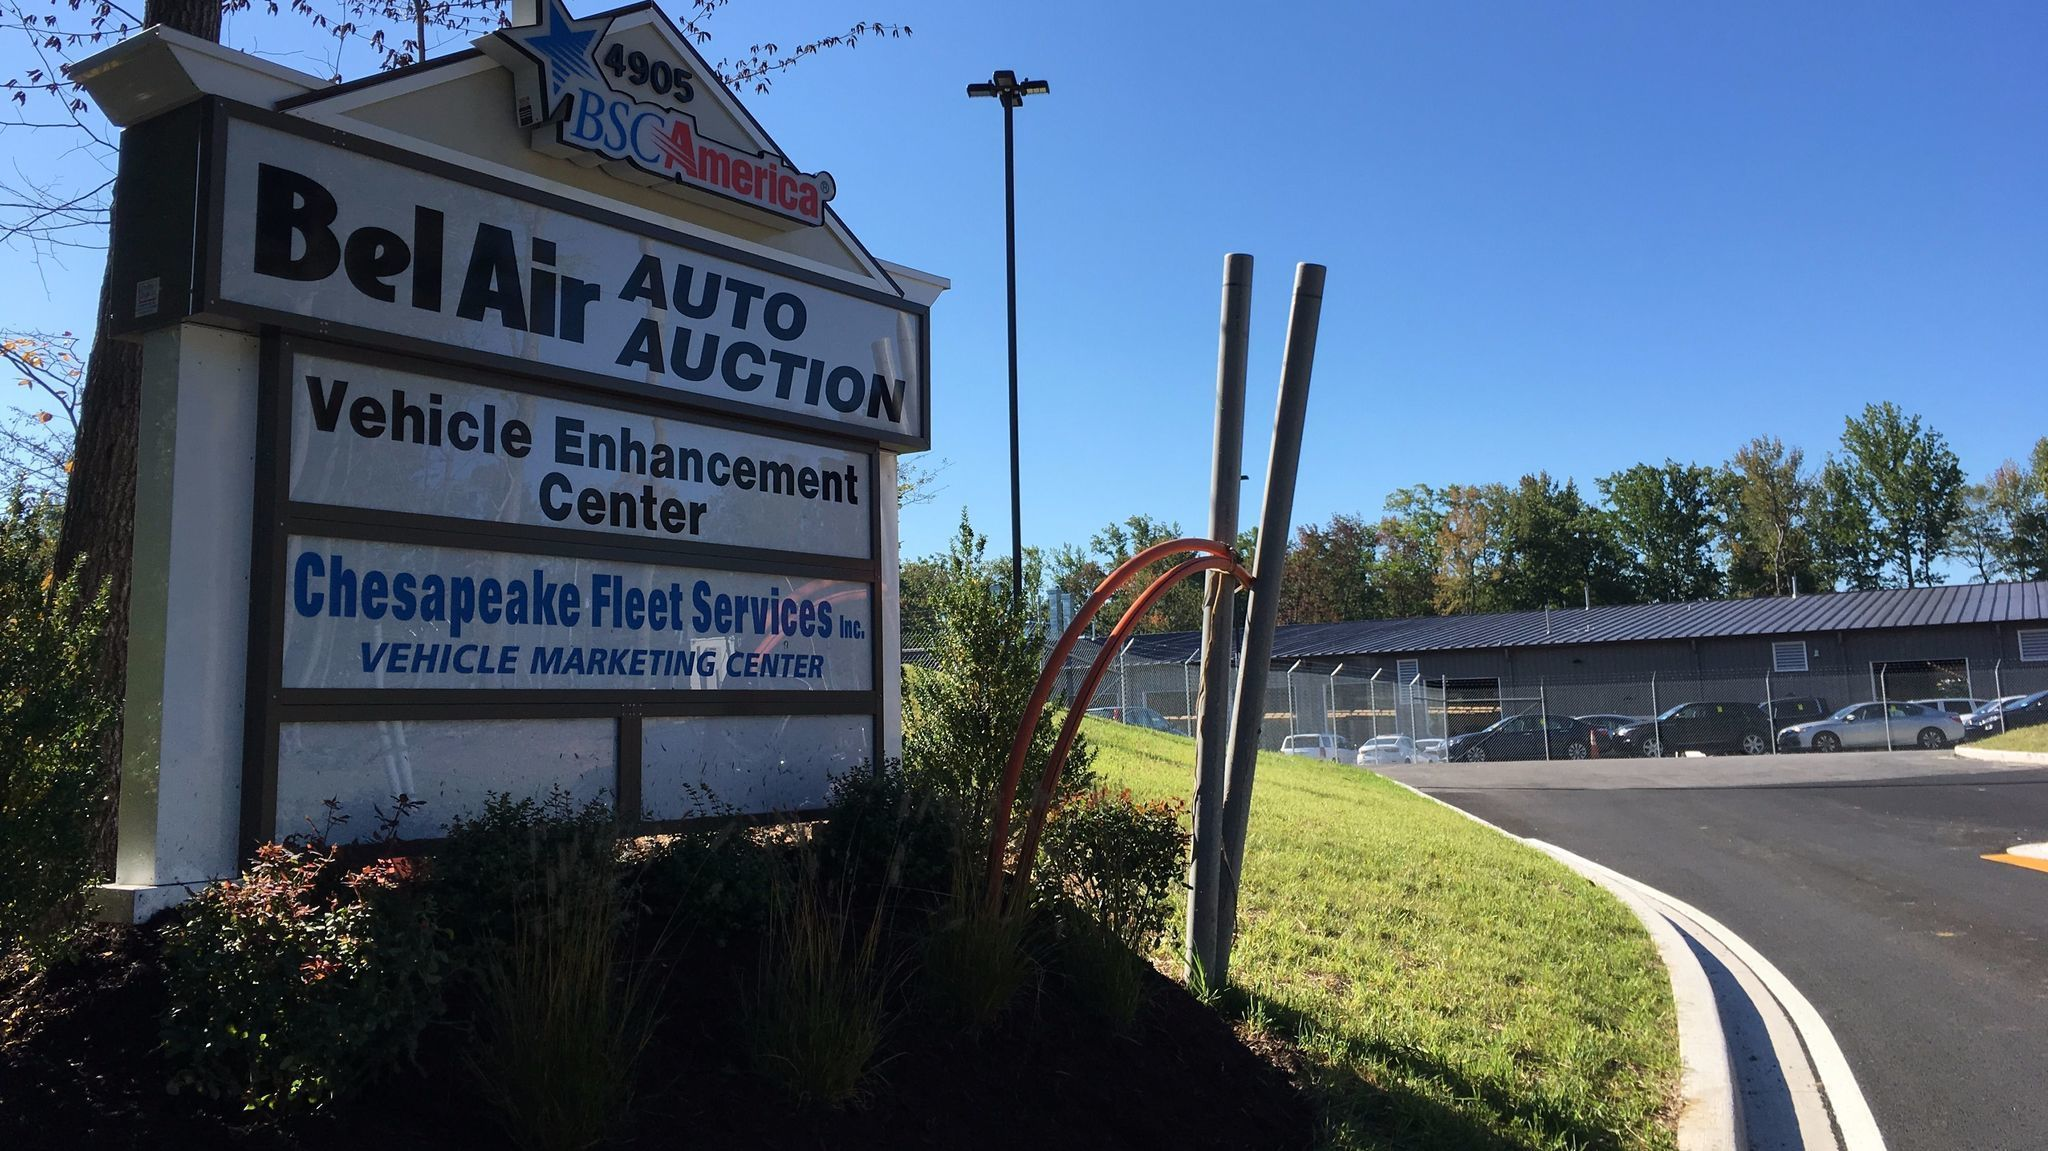 Bel Air Auto Auction >> Bel Air Auto Auction Opens New Riverside Facility The Aegis